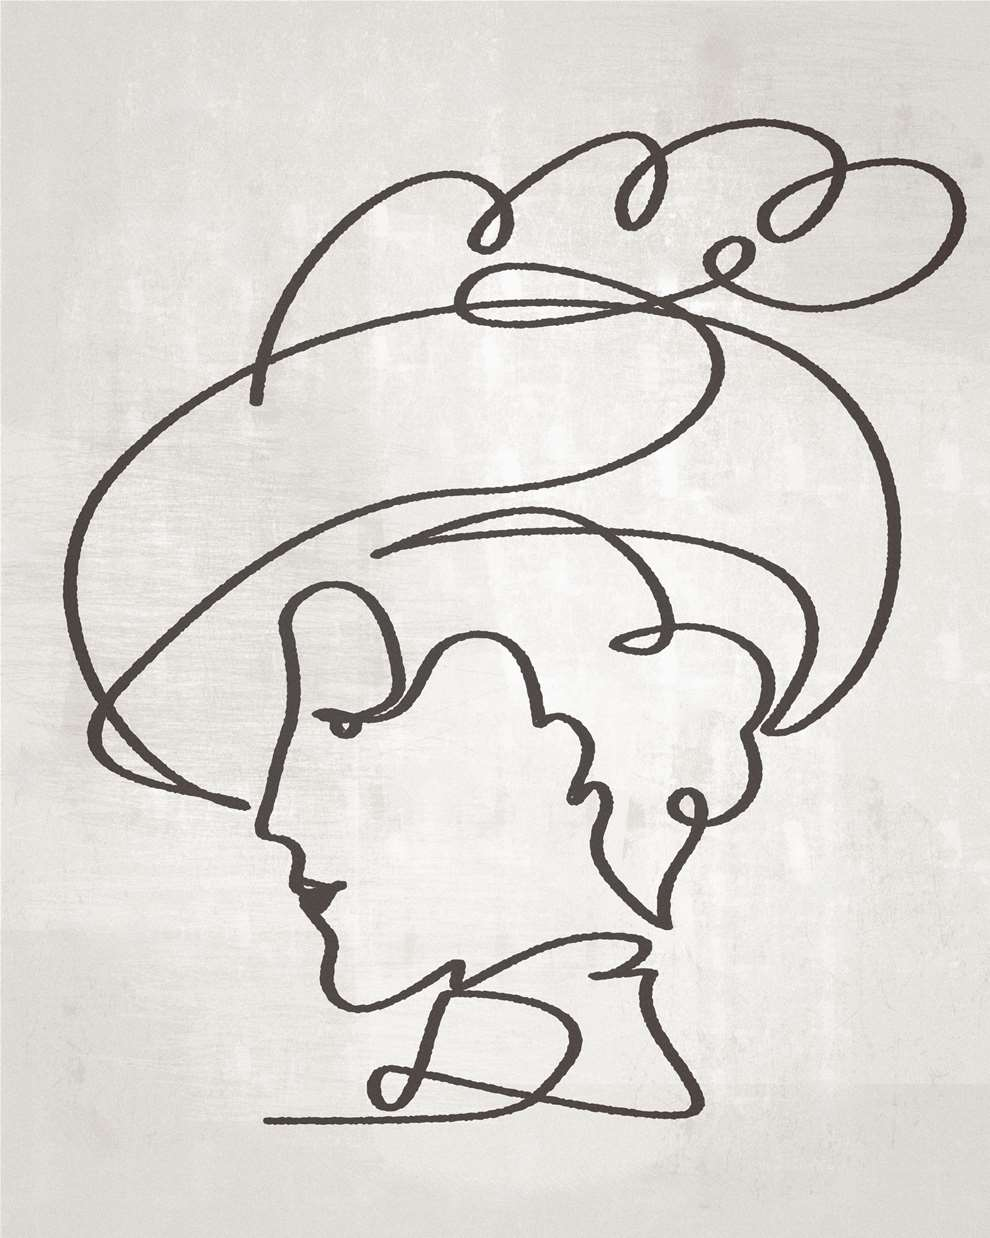 Paul Wearing, Line drawing illustration of an elegant lady in a hat on a grey textural background.